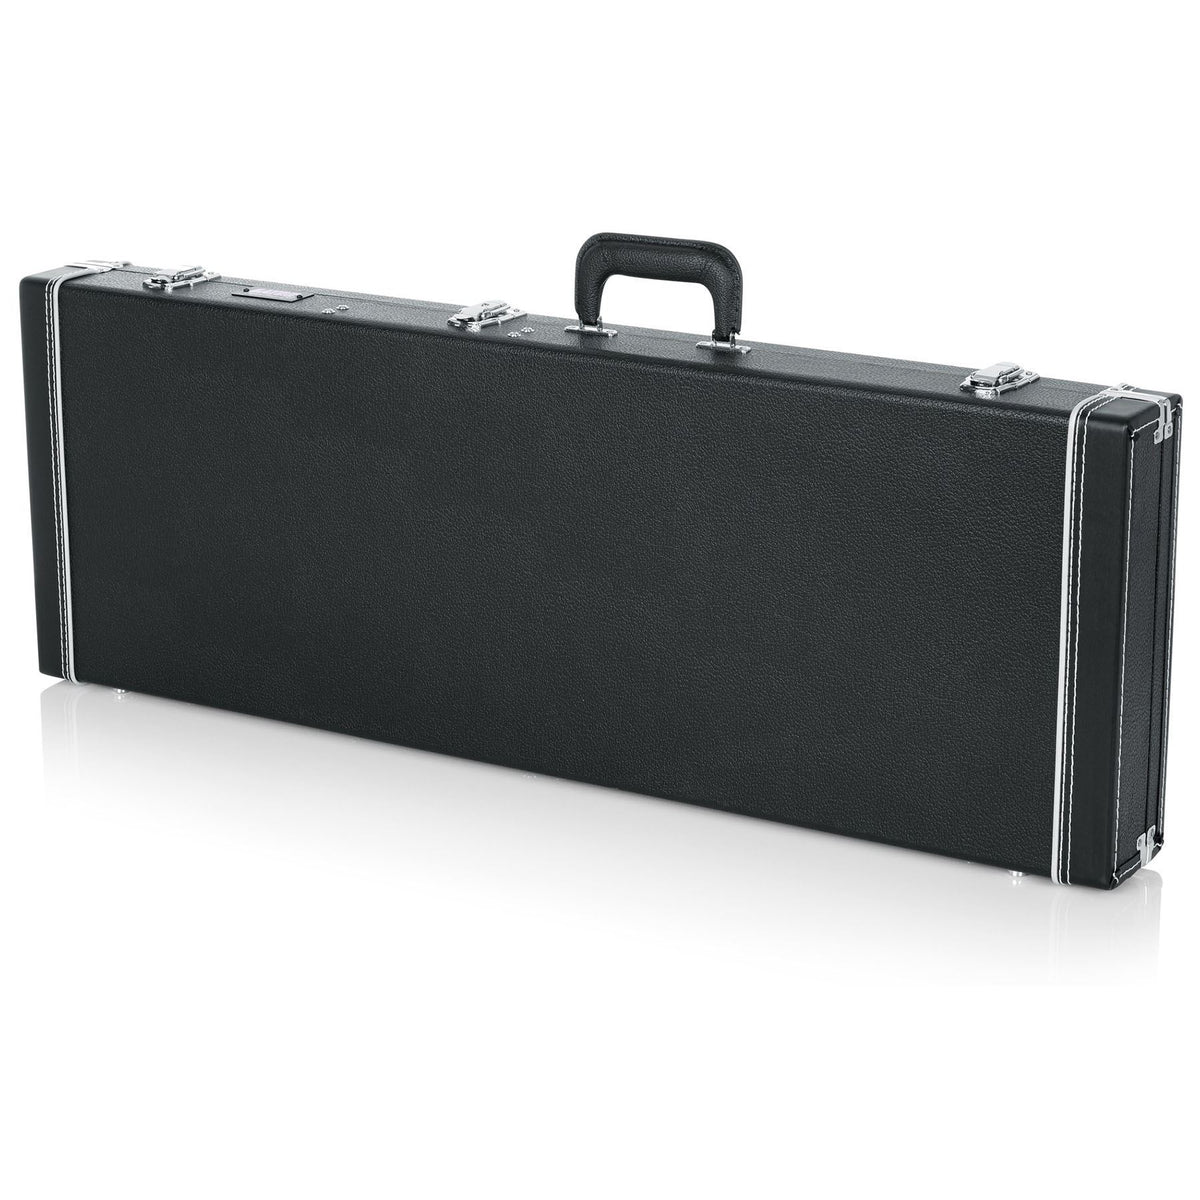 Gator Cases Deluxe Wood Case for Jackson DK2 Dinky, DK2G Dinky, DKMG Dinky Electric Guitars